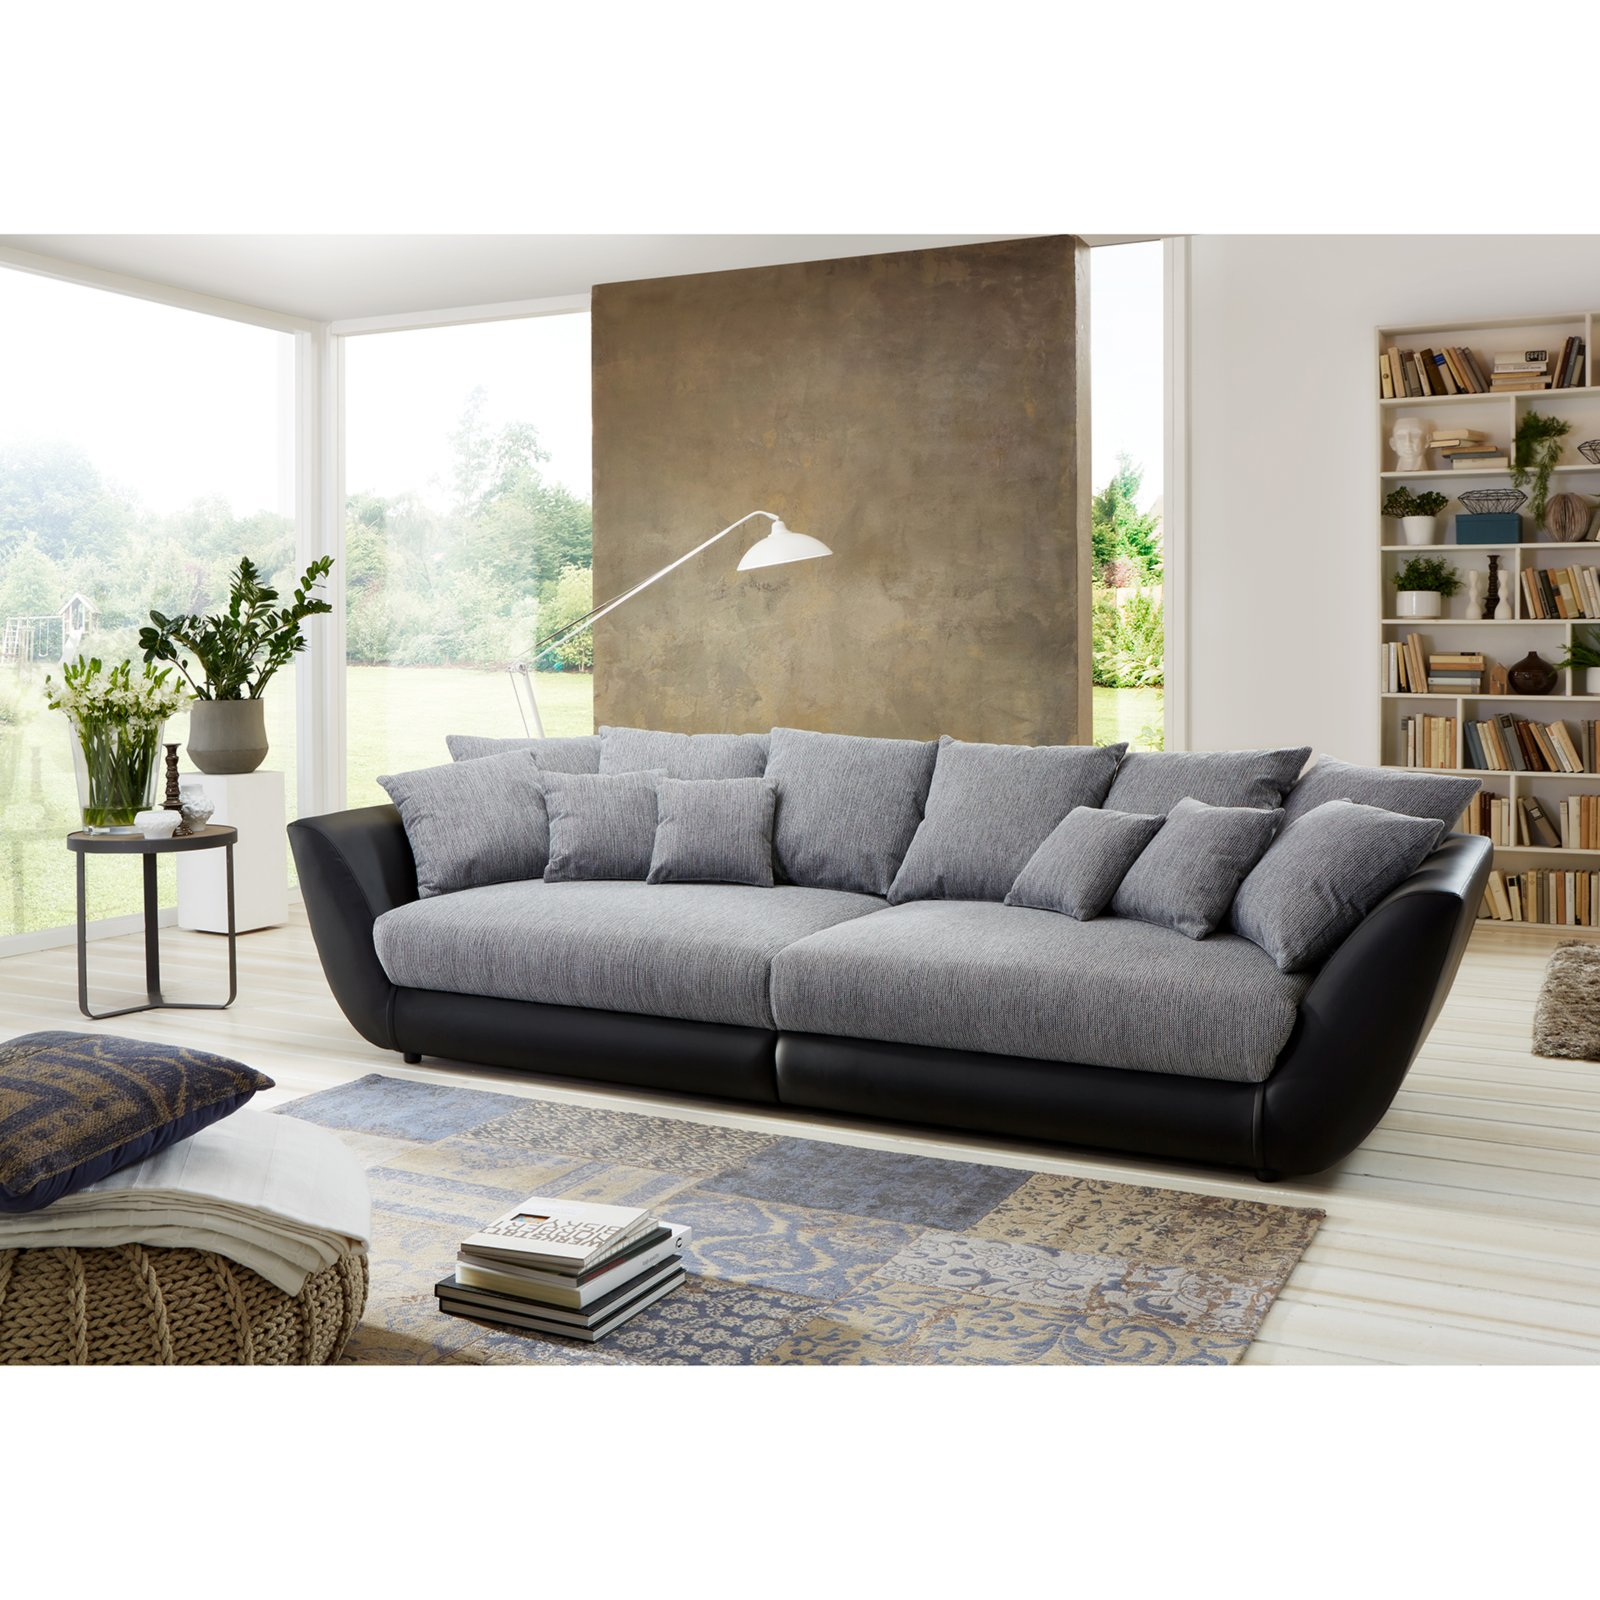 big sofa schwarz grau federkern mit 12 kissen ebay. Black Bedroom Furniture Sets. Home Design Ideas